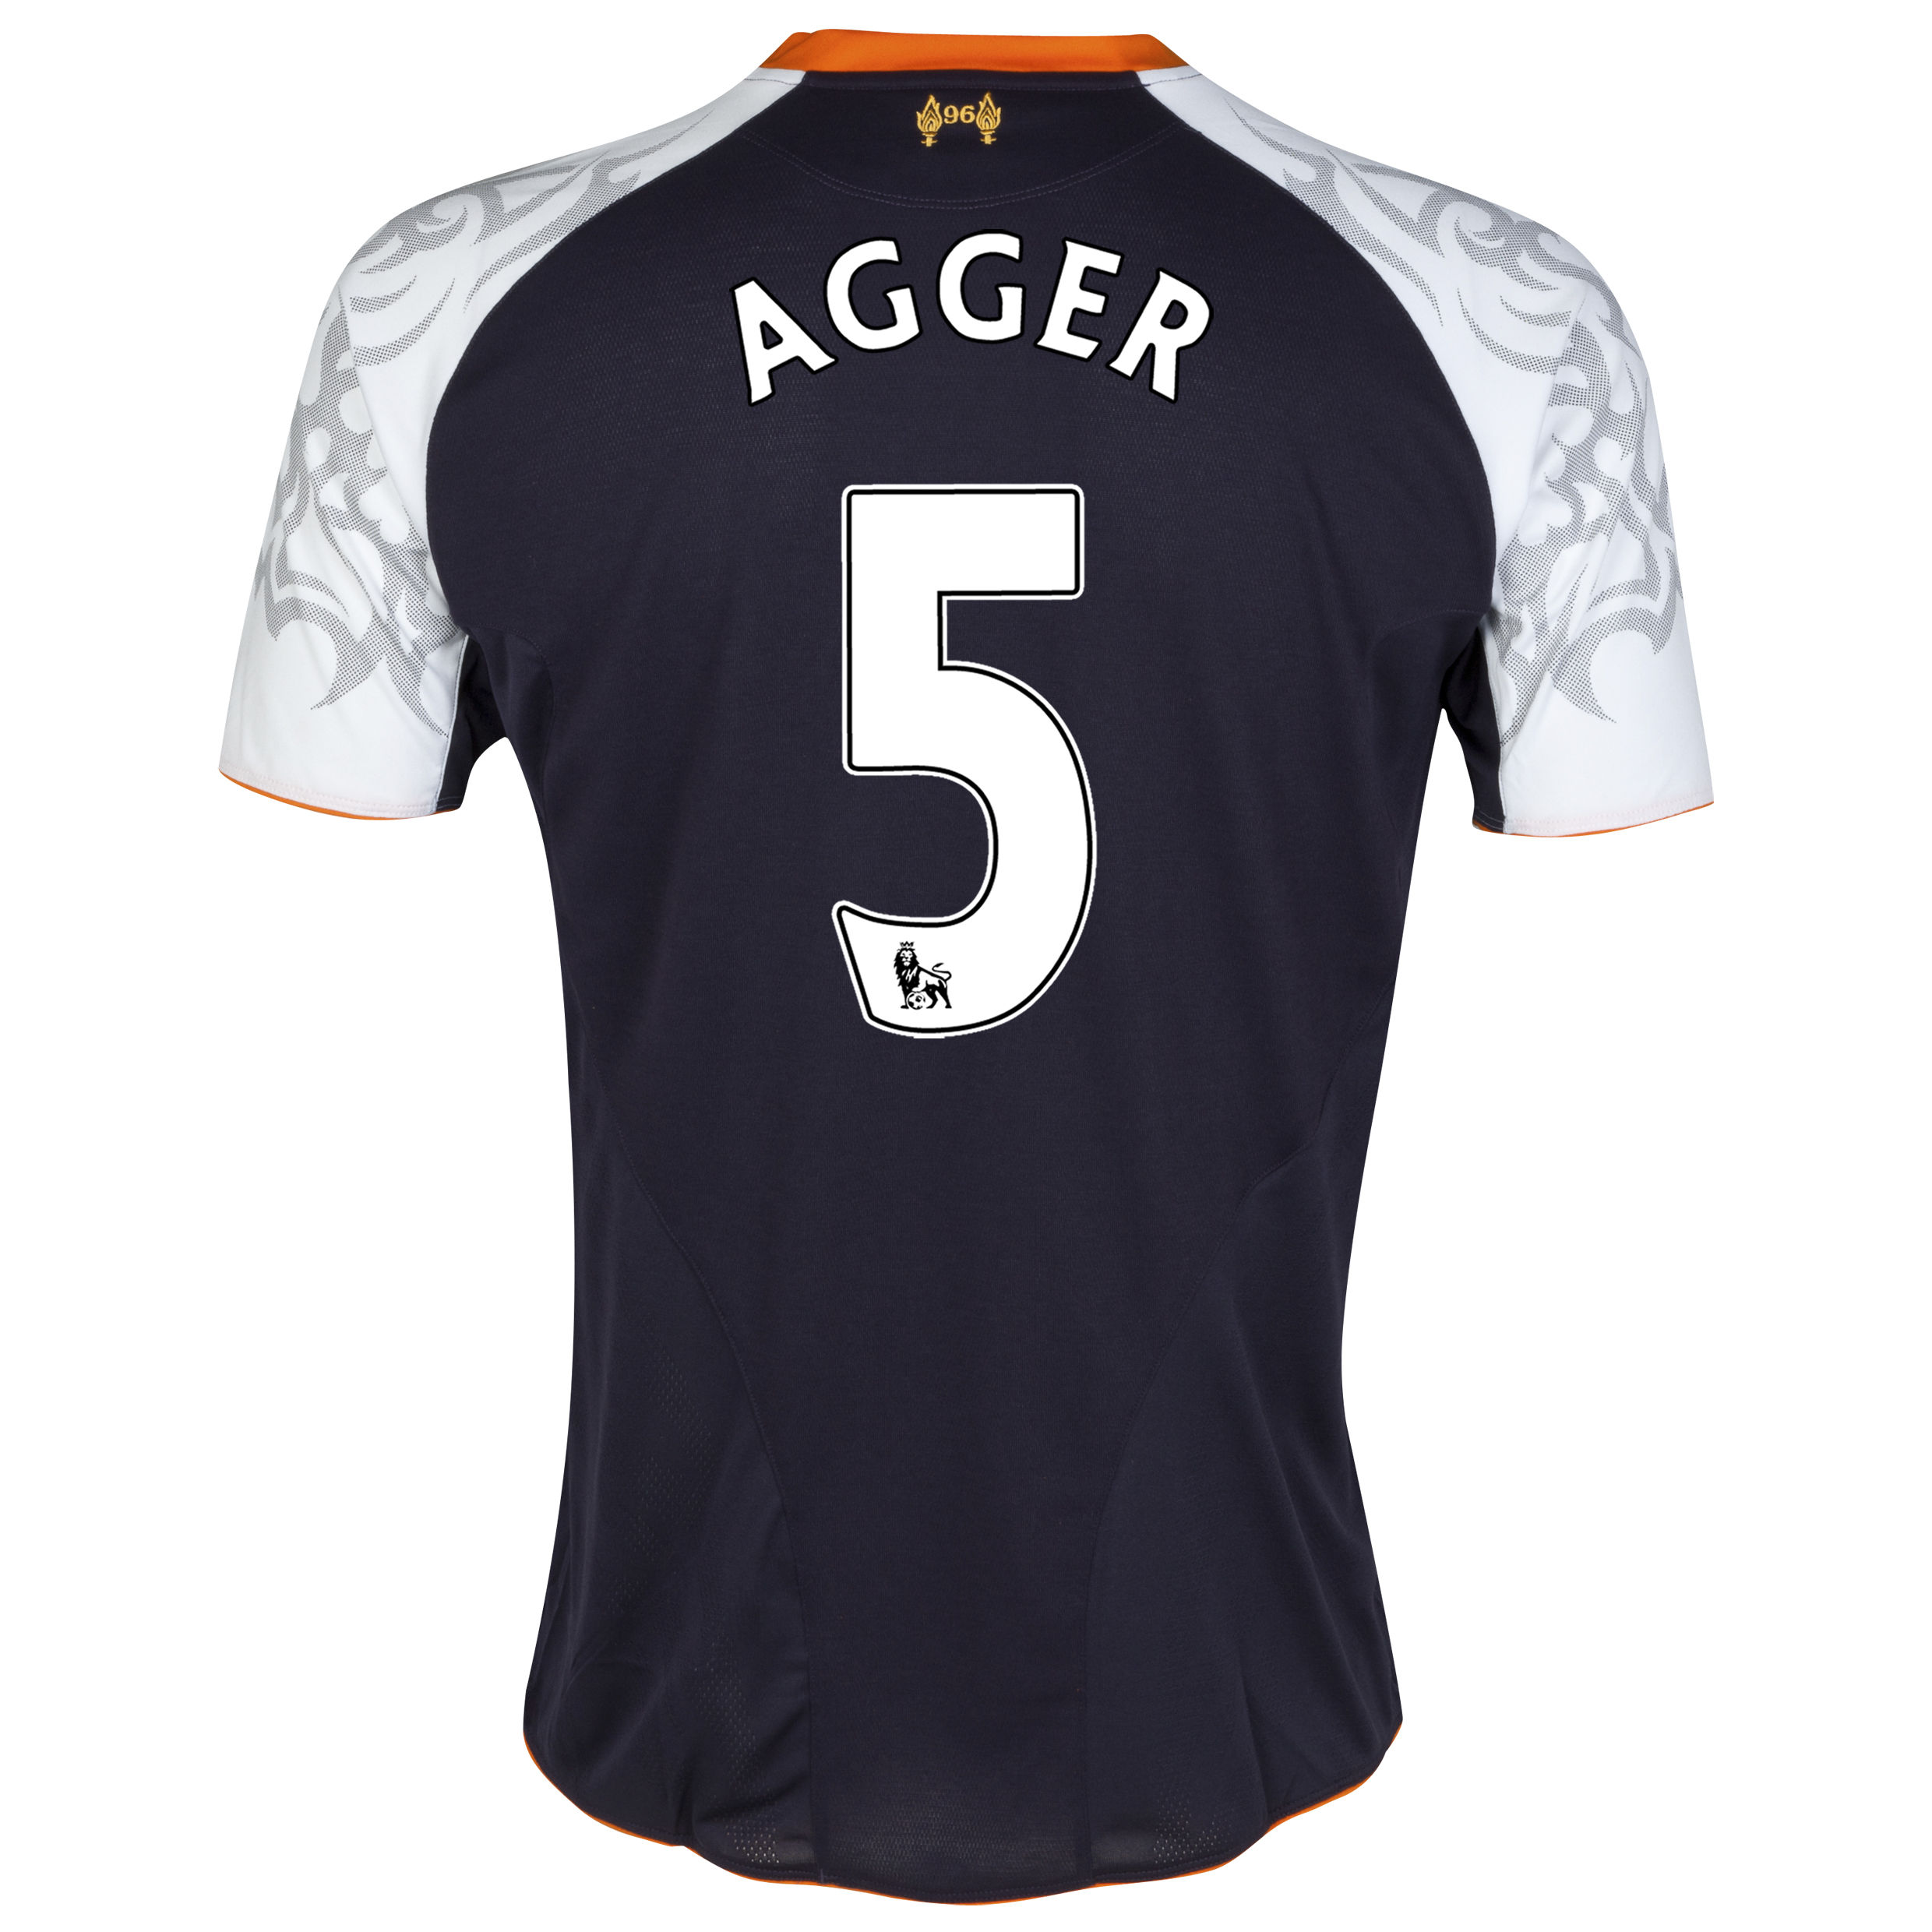 Liverpool Third Shirt 2012/13 with Agger 5 printing